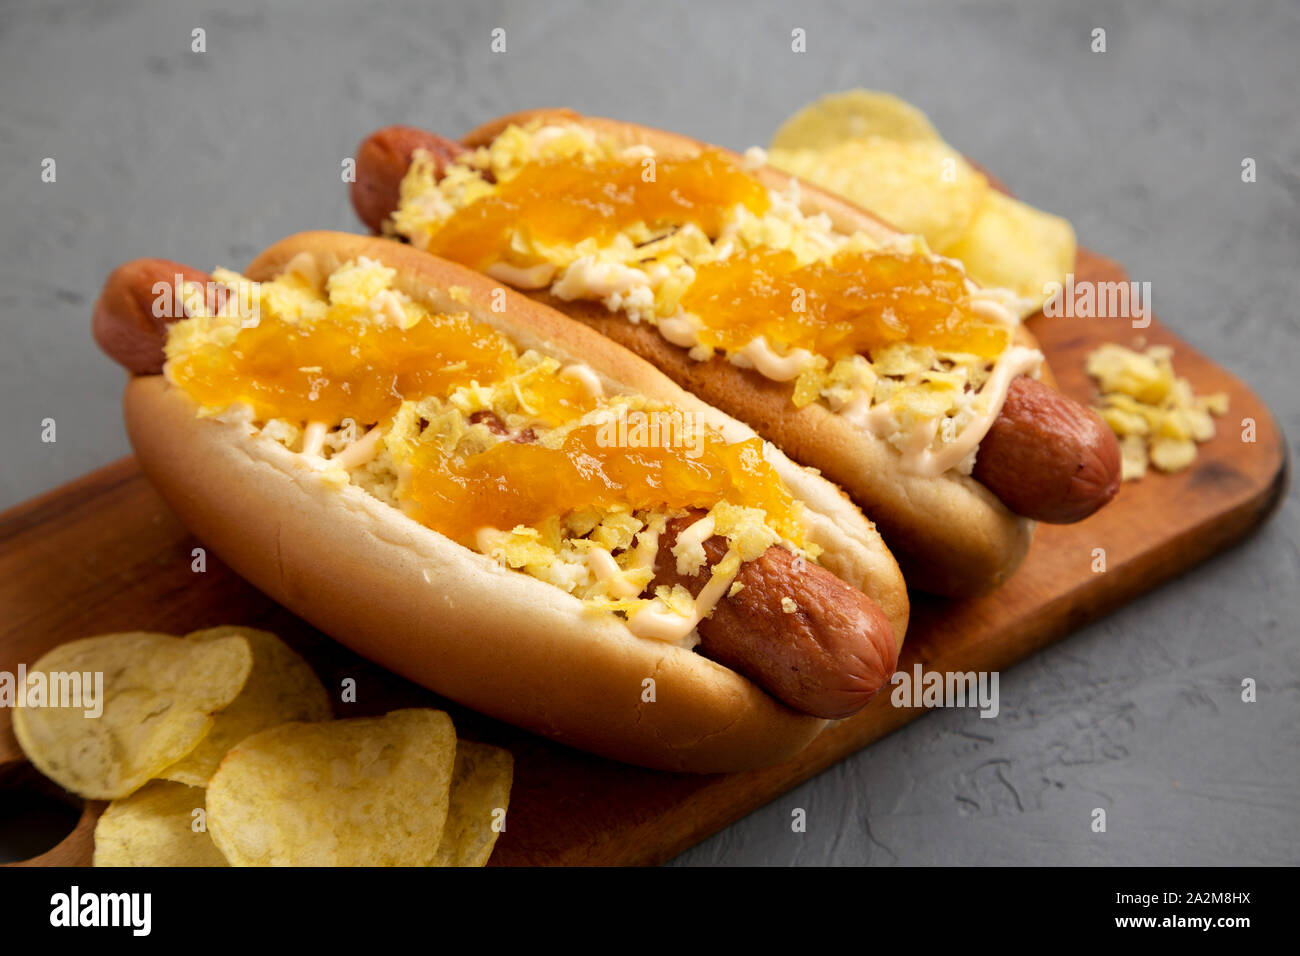 Homemade colombian hot dogs with pineapple sauce, chips and mayo ketchup on a rustic wooden board on a gray background, side view. Close-up. Stock Photo